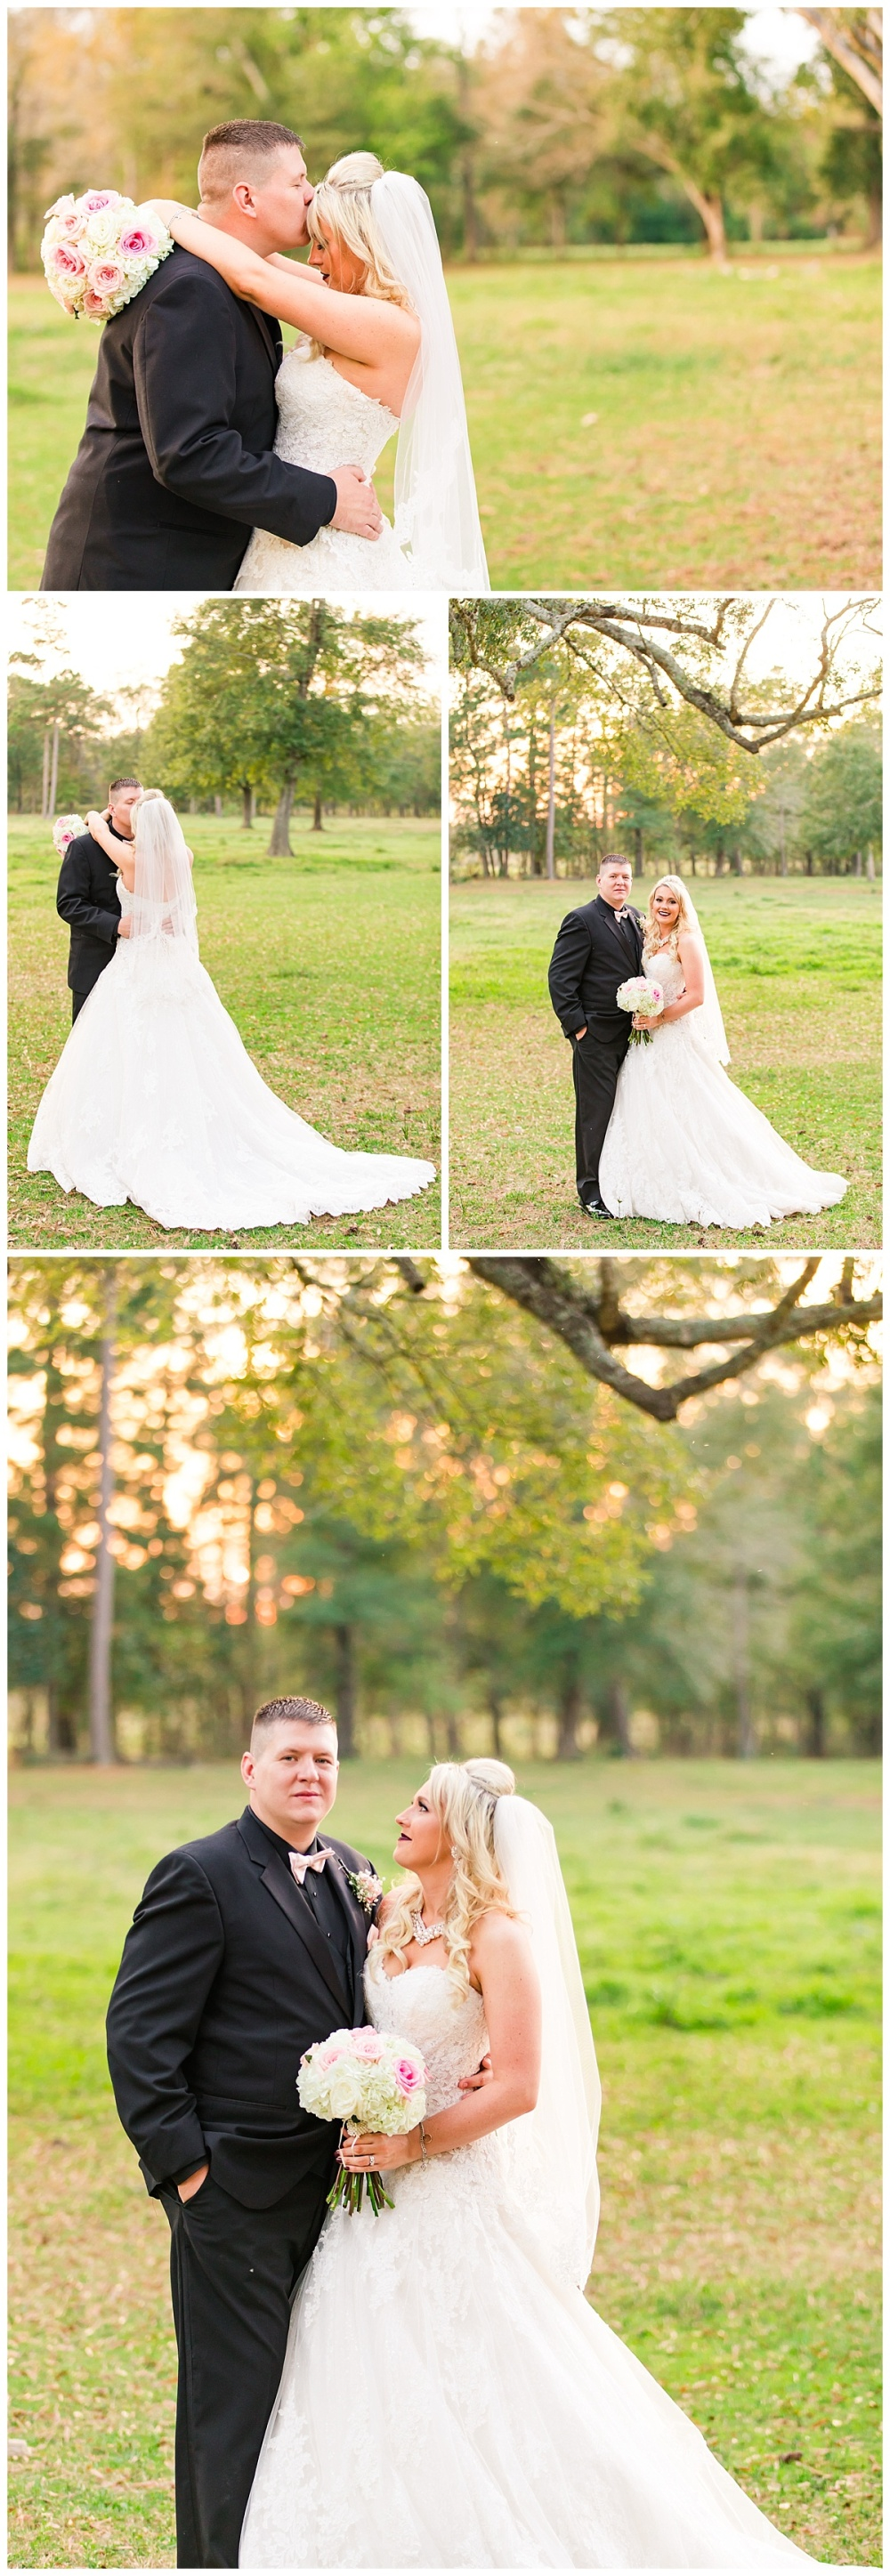 Carly-Barton-Photography-South-Texas-Wedding-Photographer-SJP-Ranch-Hardin_0047